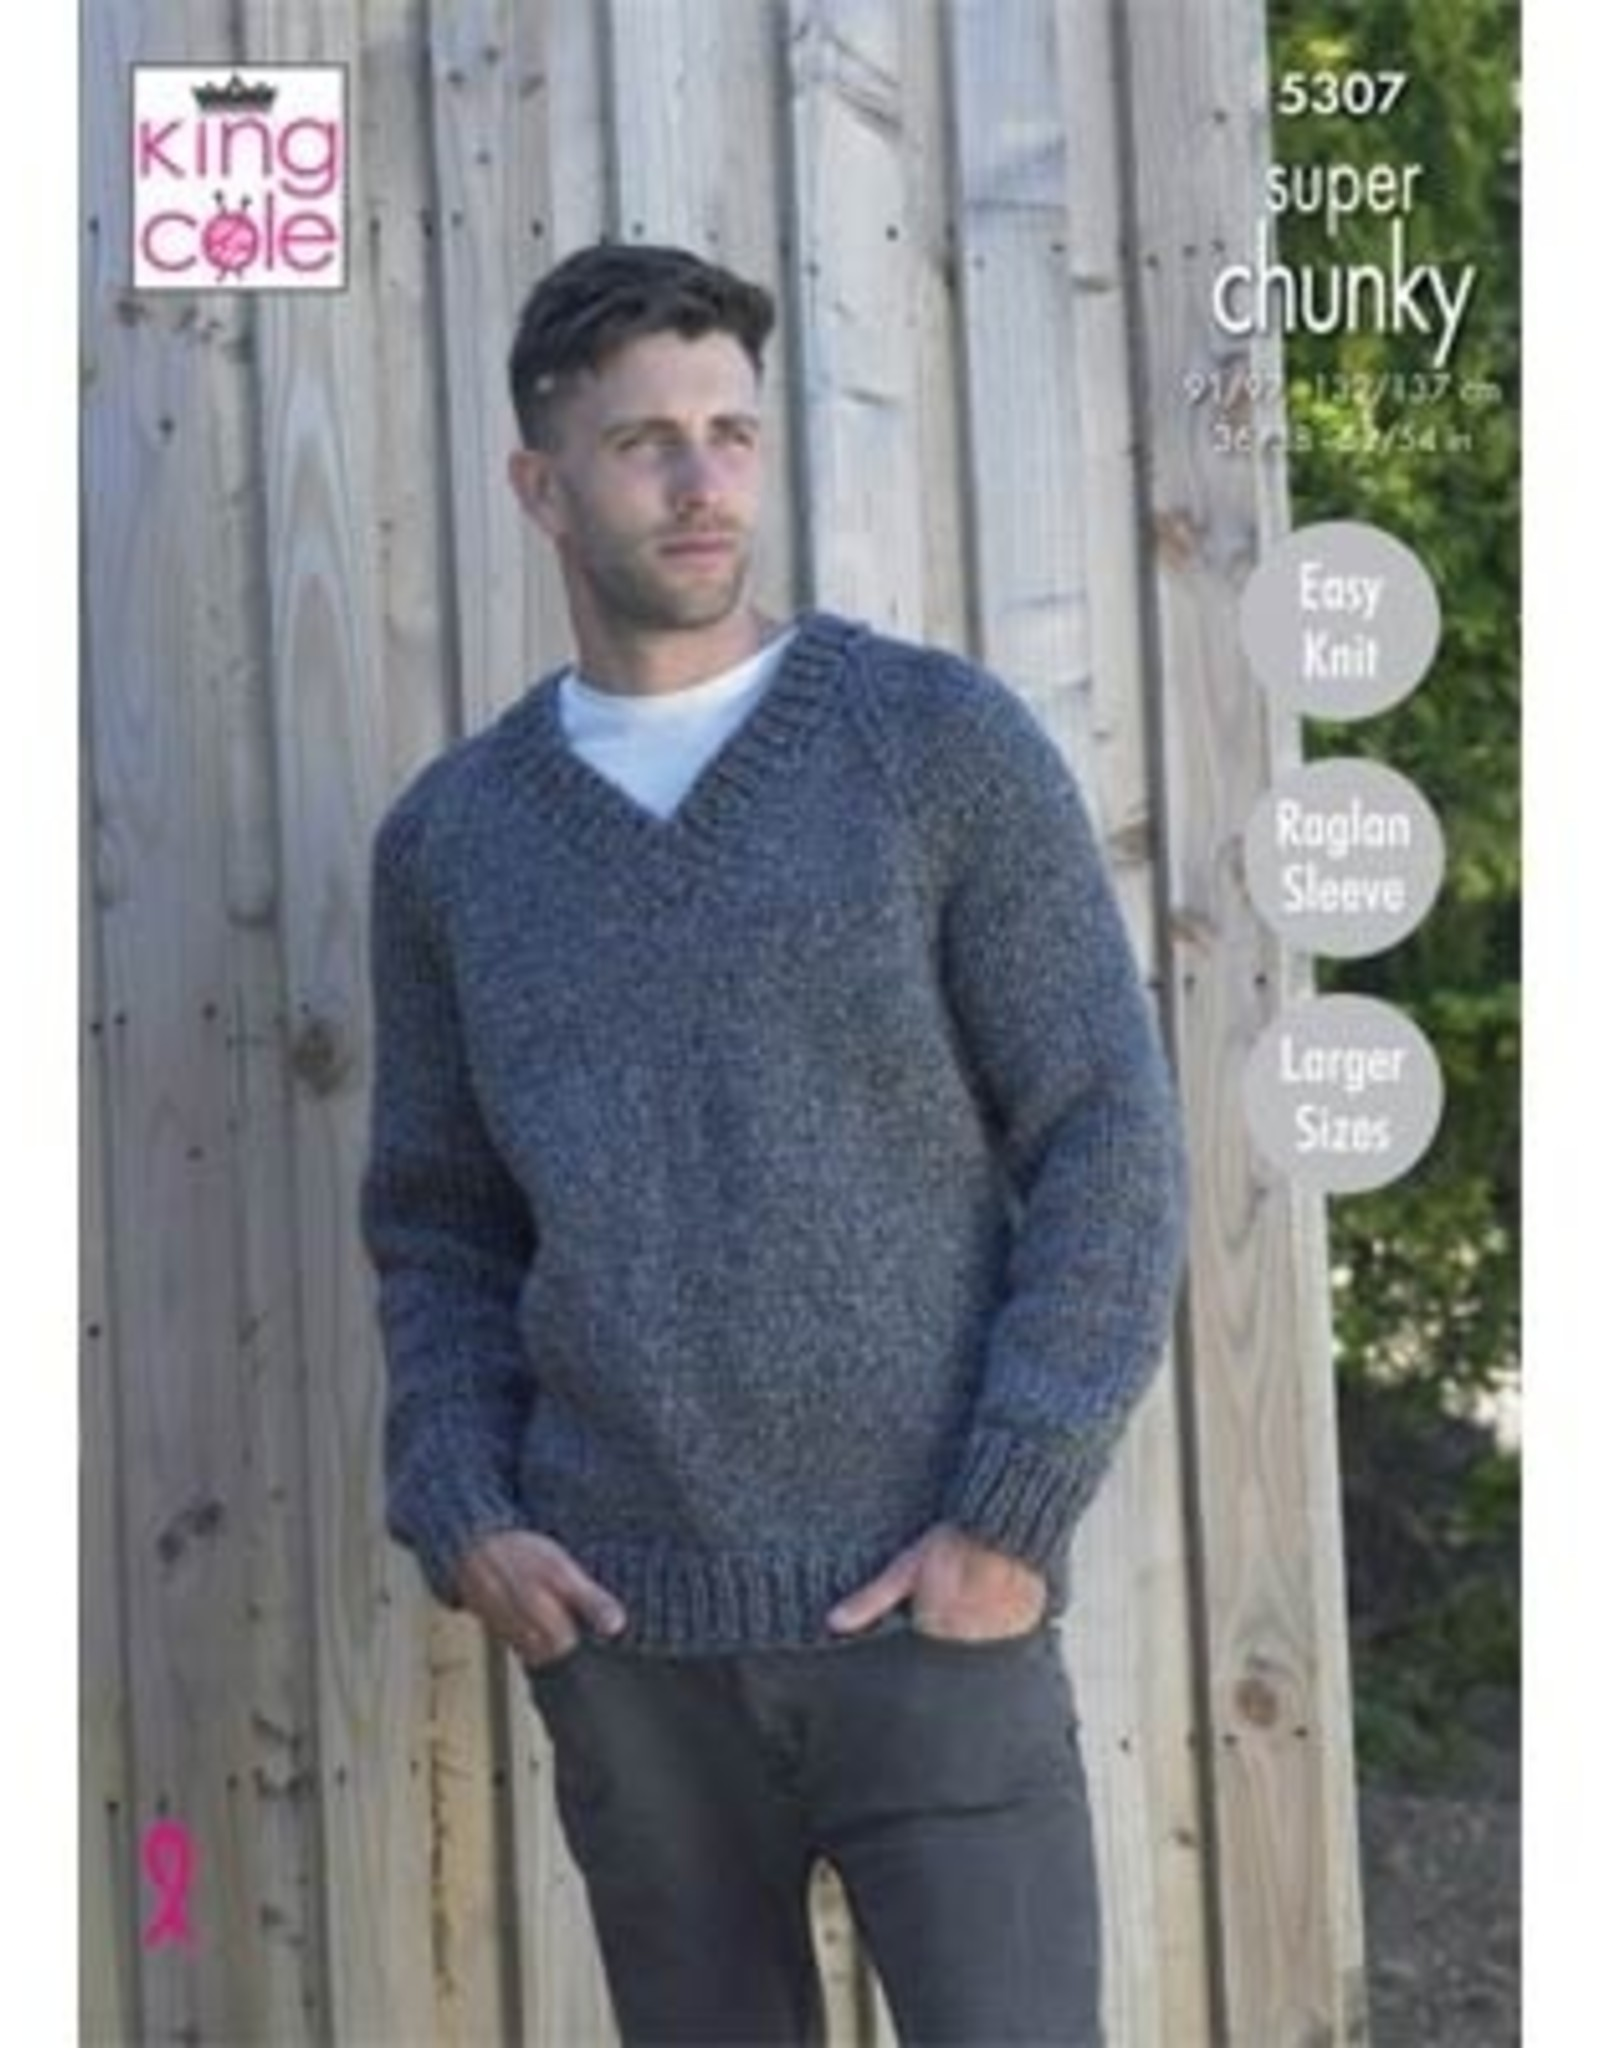 King Cole Pattern - Men's Pullover 5307